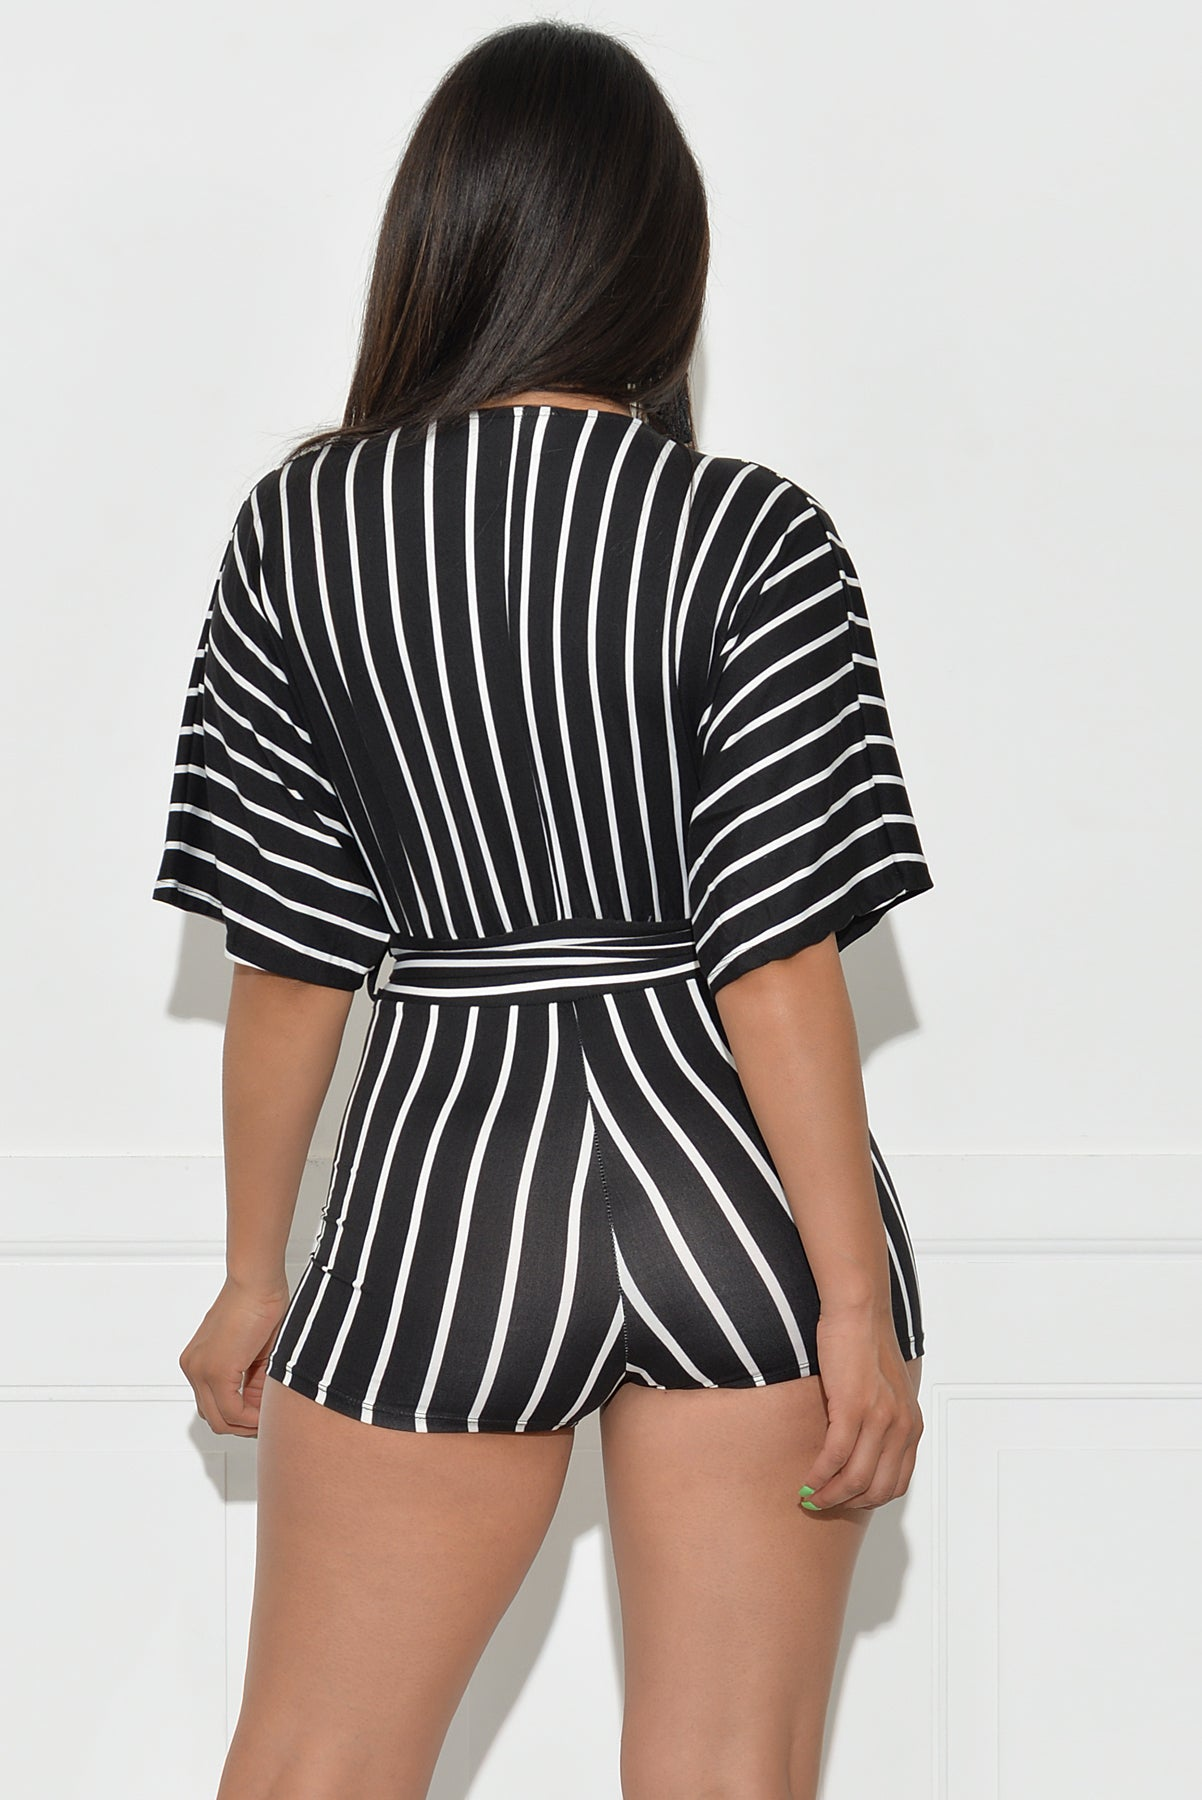 Ryann Striped Romper - Black/White